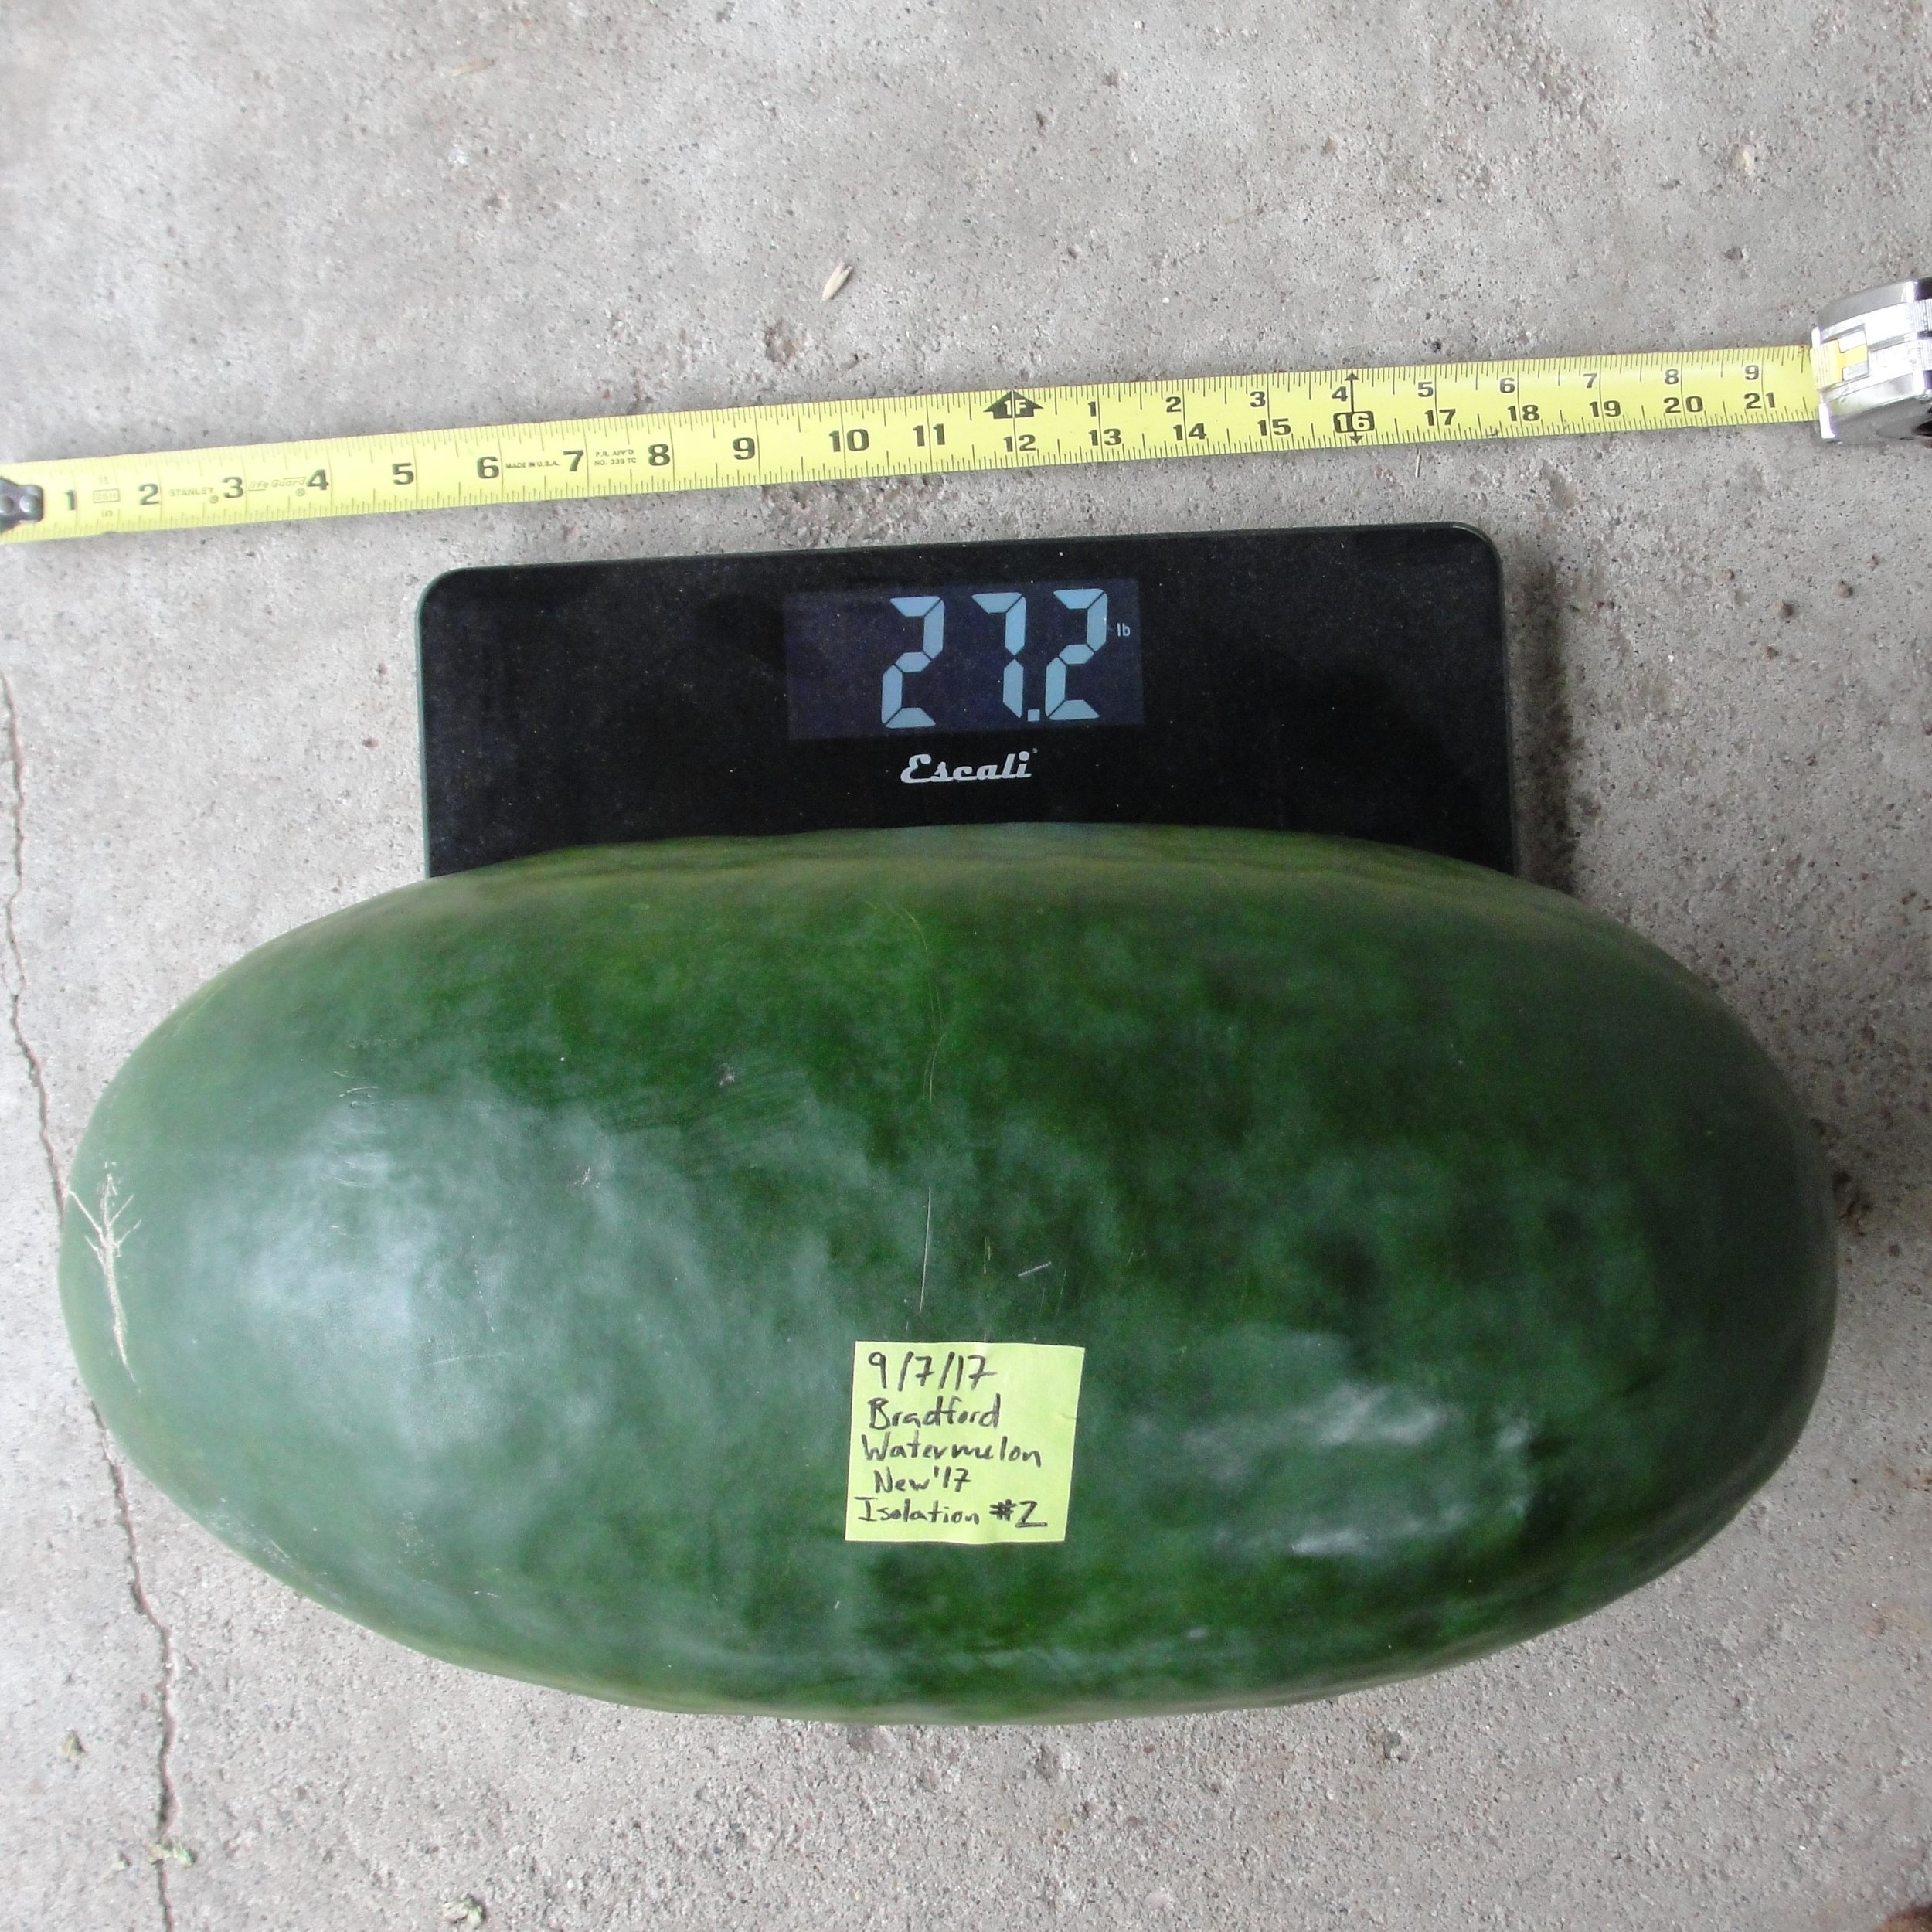 The Bradford Watermelon is now shared by Exchange lister, Bjorn Bergman